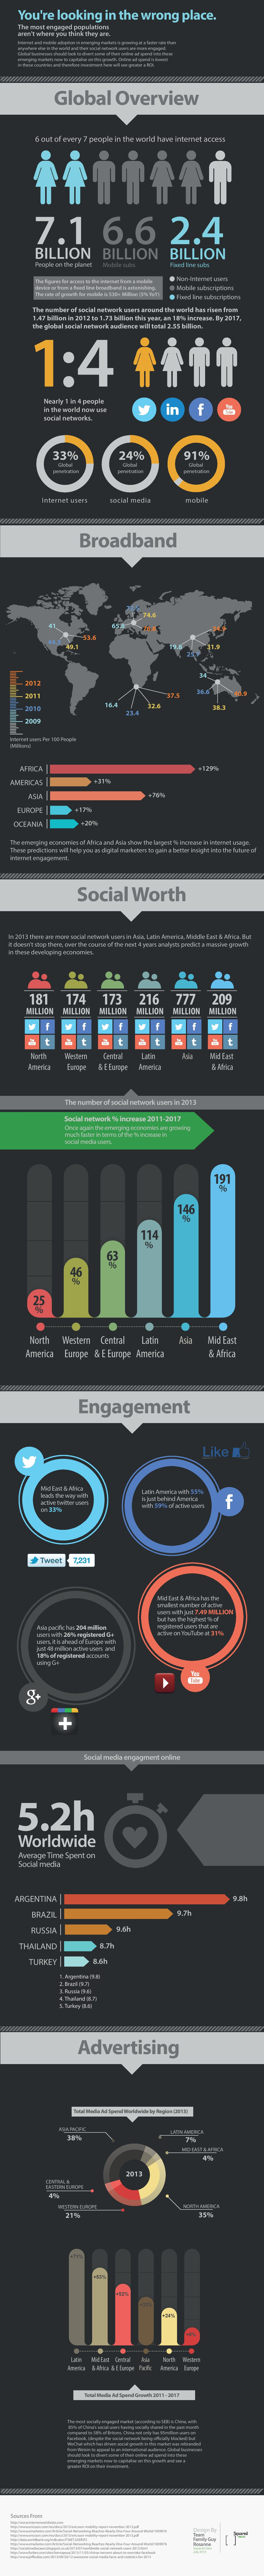 An Infographic Look at 2013 Global Internet, Mobile, and Social Engagement